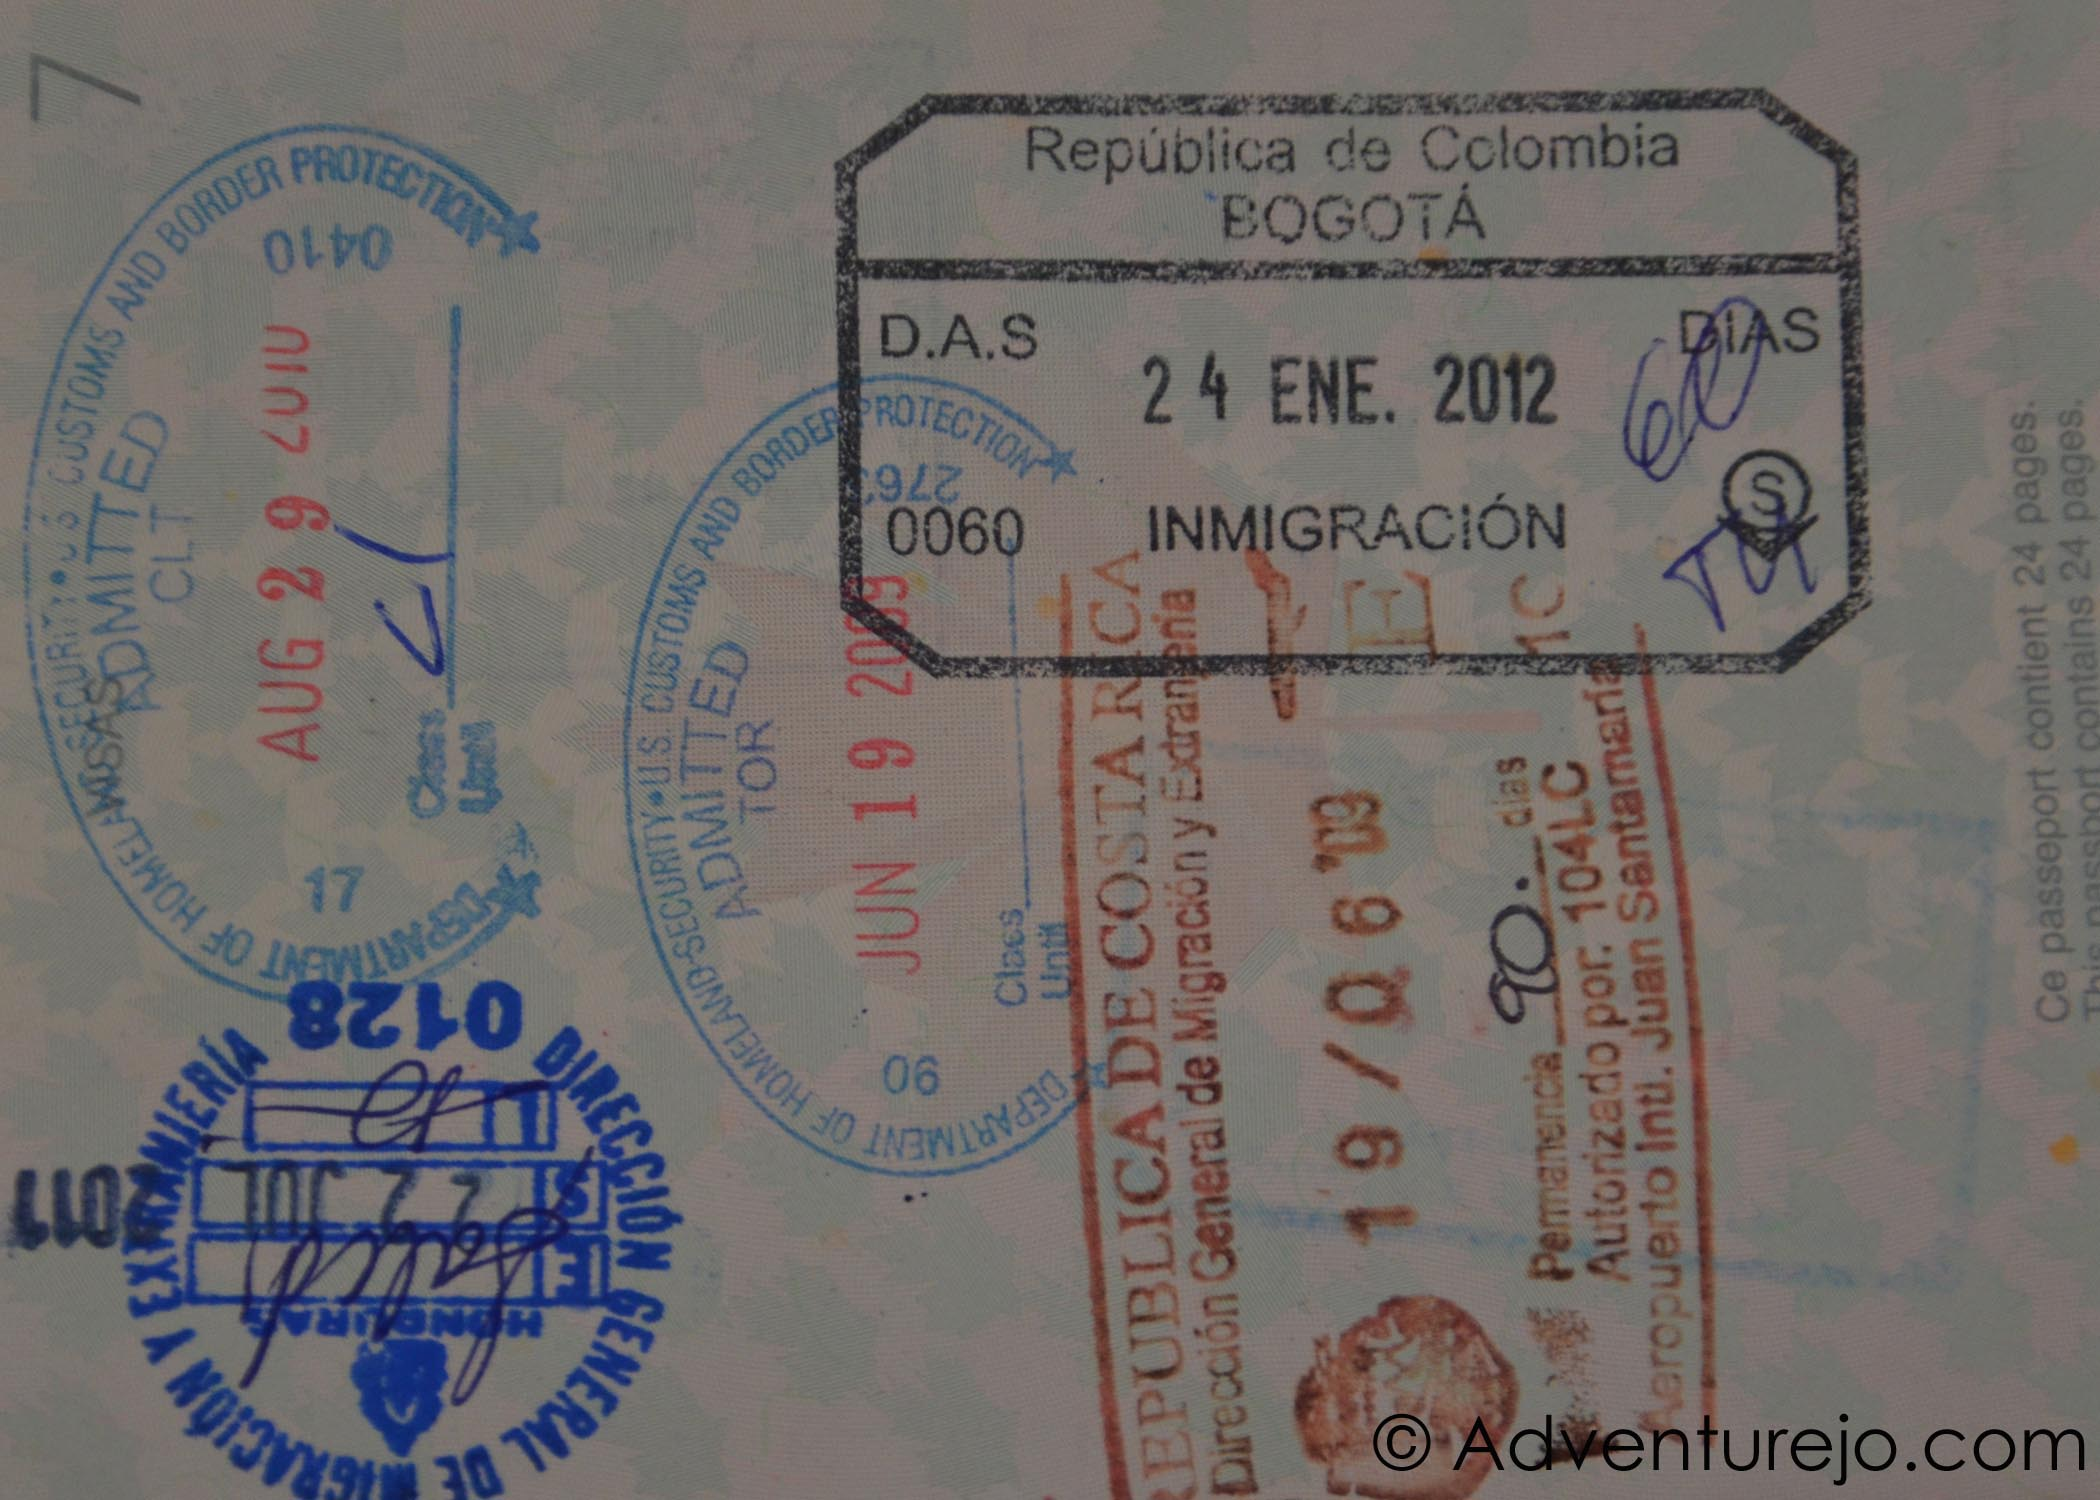 All you need to know about renewing your tourist visa in Colombia